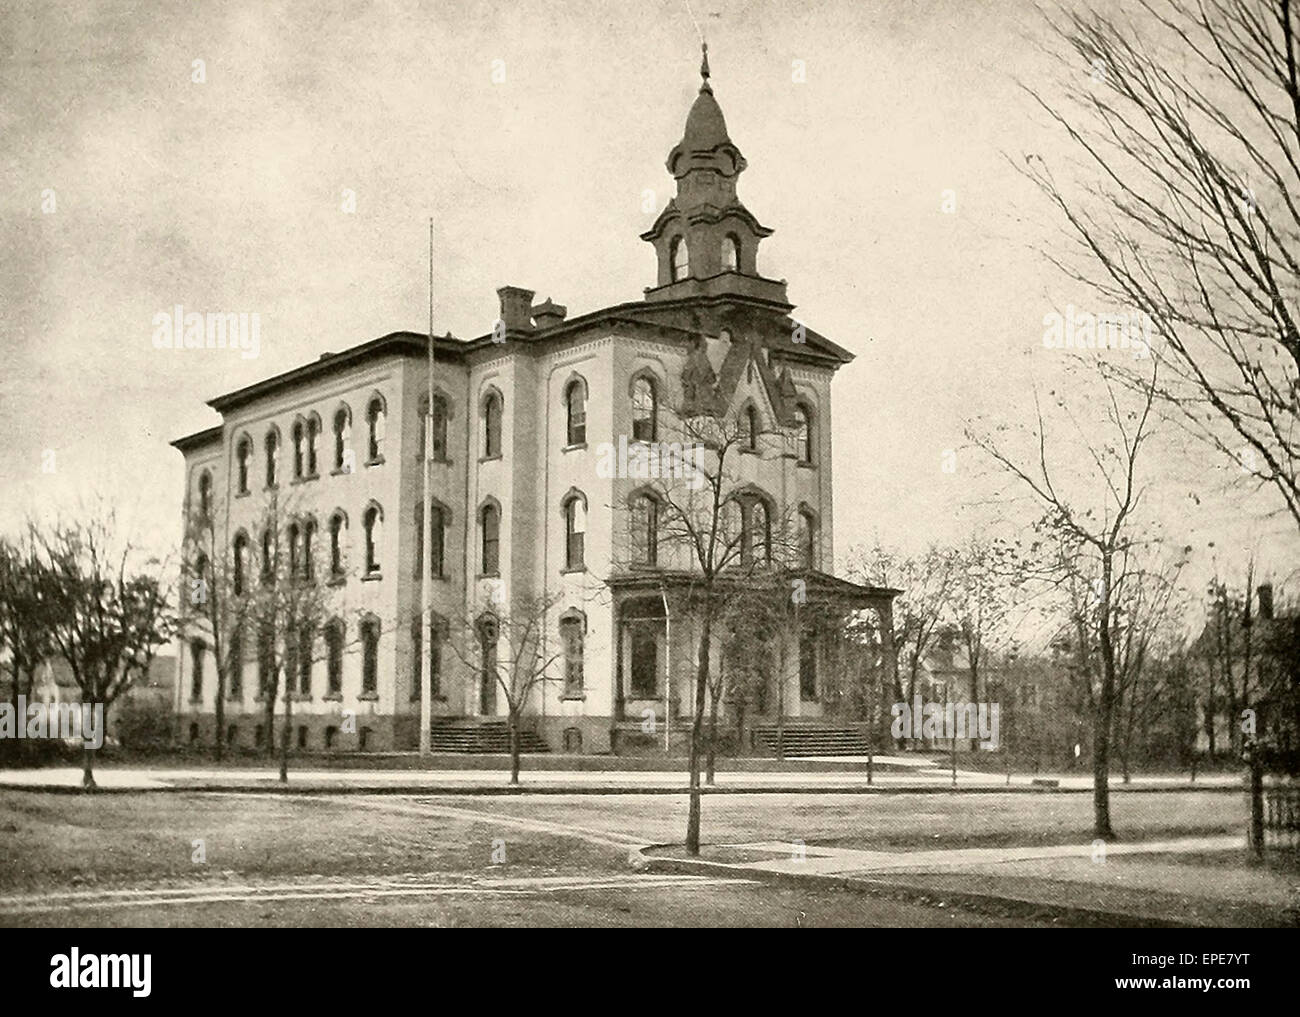 Livingston Avenue High School on Livingston Avenue at Redmond and Welton Street, erected in 1875, circa 1905 - Stock Image